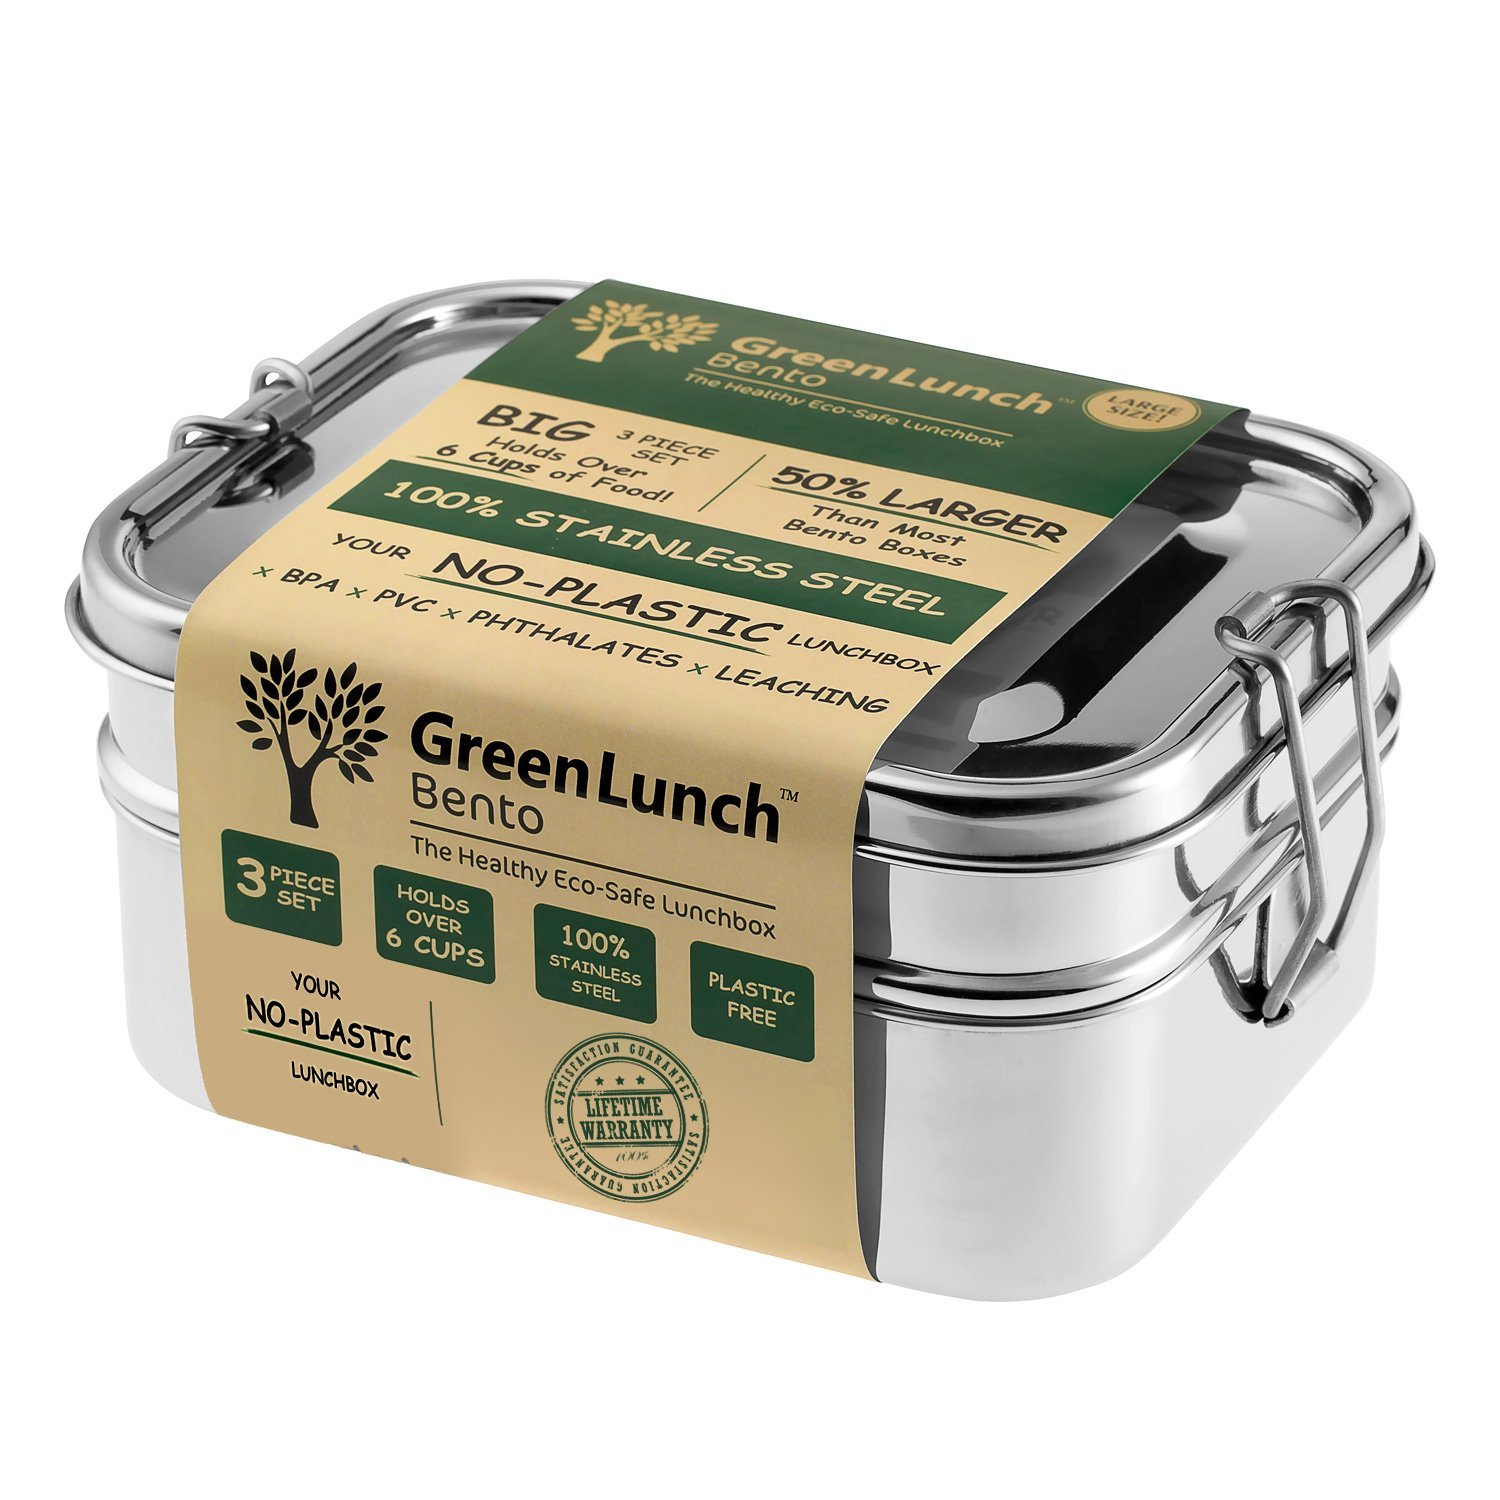 Stainless Steel 3-in-1 Bento Lunch Box + FREE LIFE-TIME WARRANTY | Holds 6 Cups of Food + BONUS Pod Insert | TOP-GRADE Durable Stainless Steel | ECO-Safe & Healthy | Perfect for both Kids + Adults